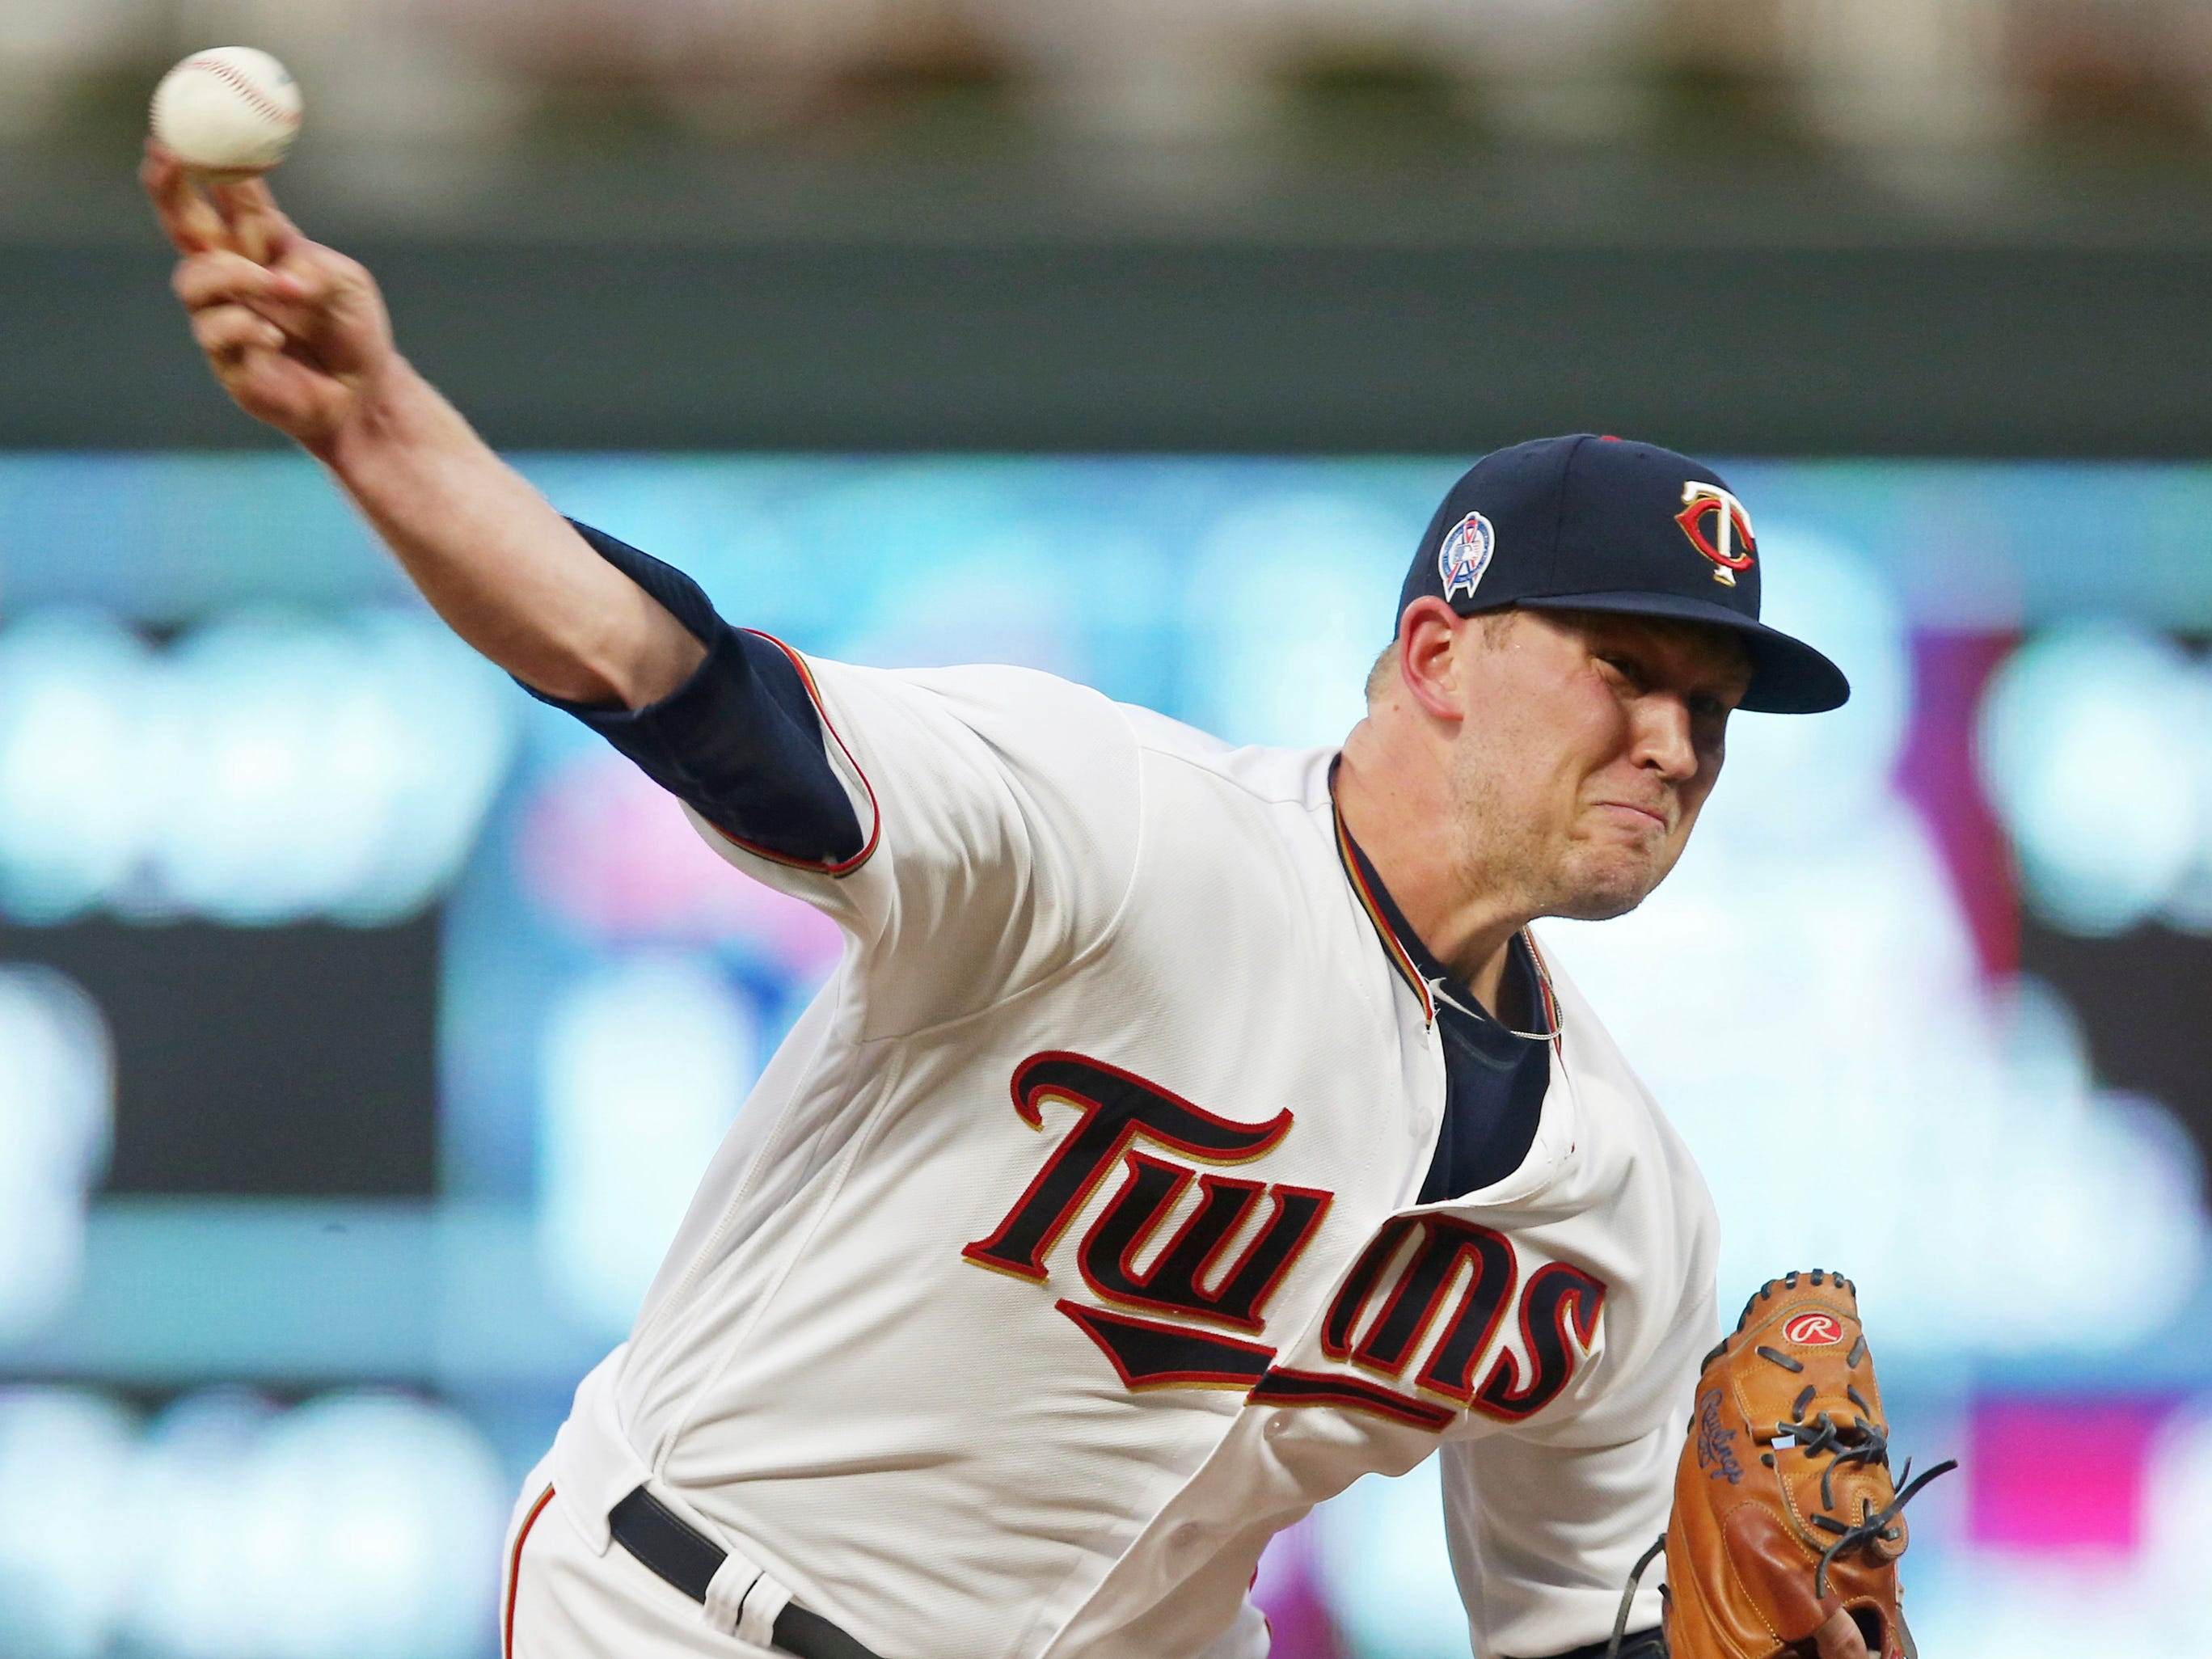 Minnesota Twins pitcher Tyler Duffey throws against the New York Yankees in the first inning of a baseball game Tuesday, Sept. 11, 2018, in Minneapolis.